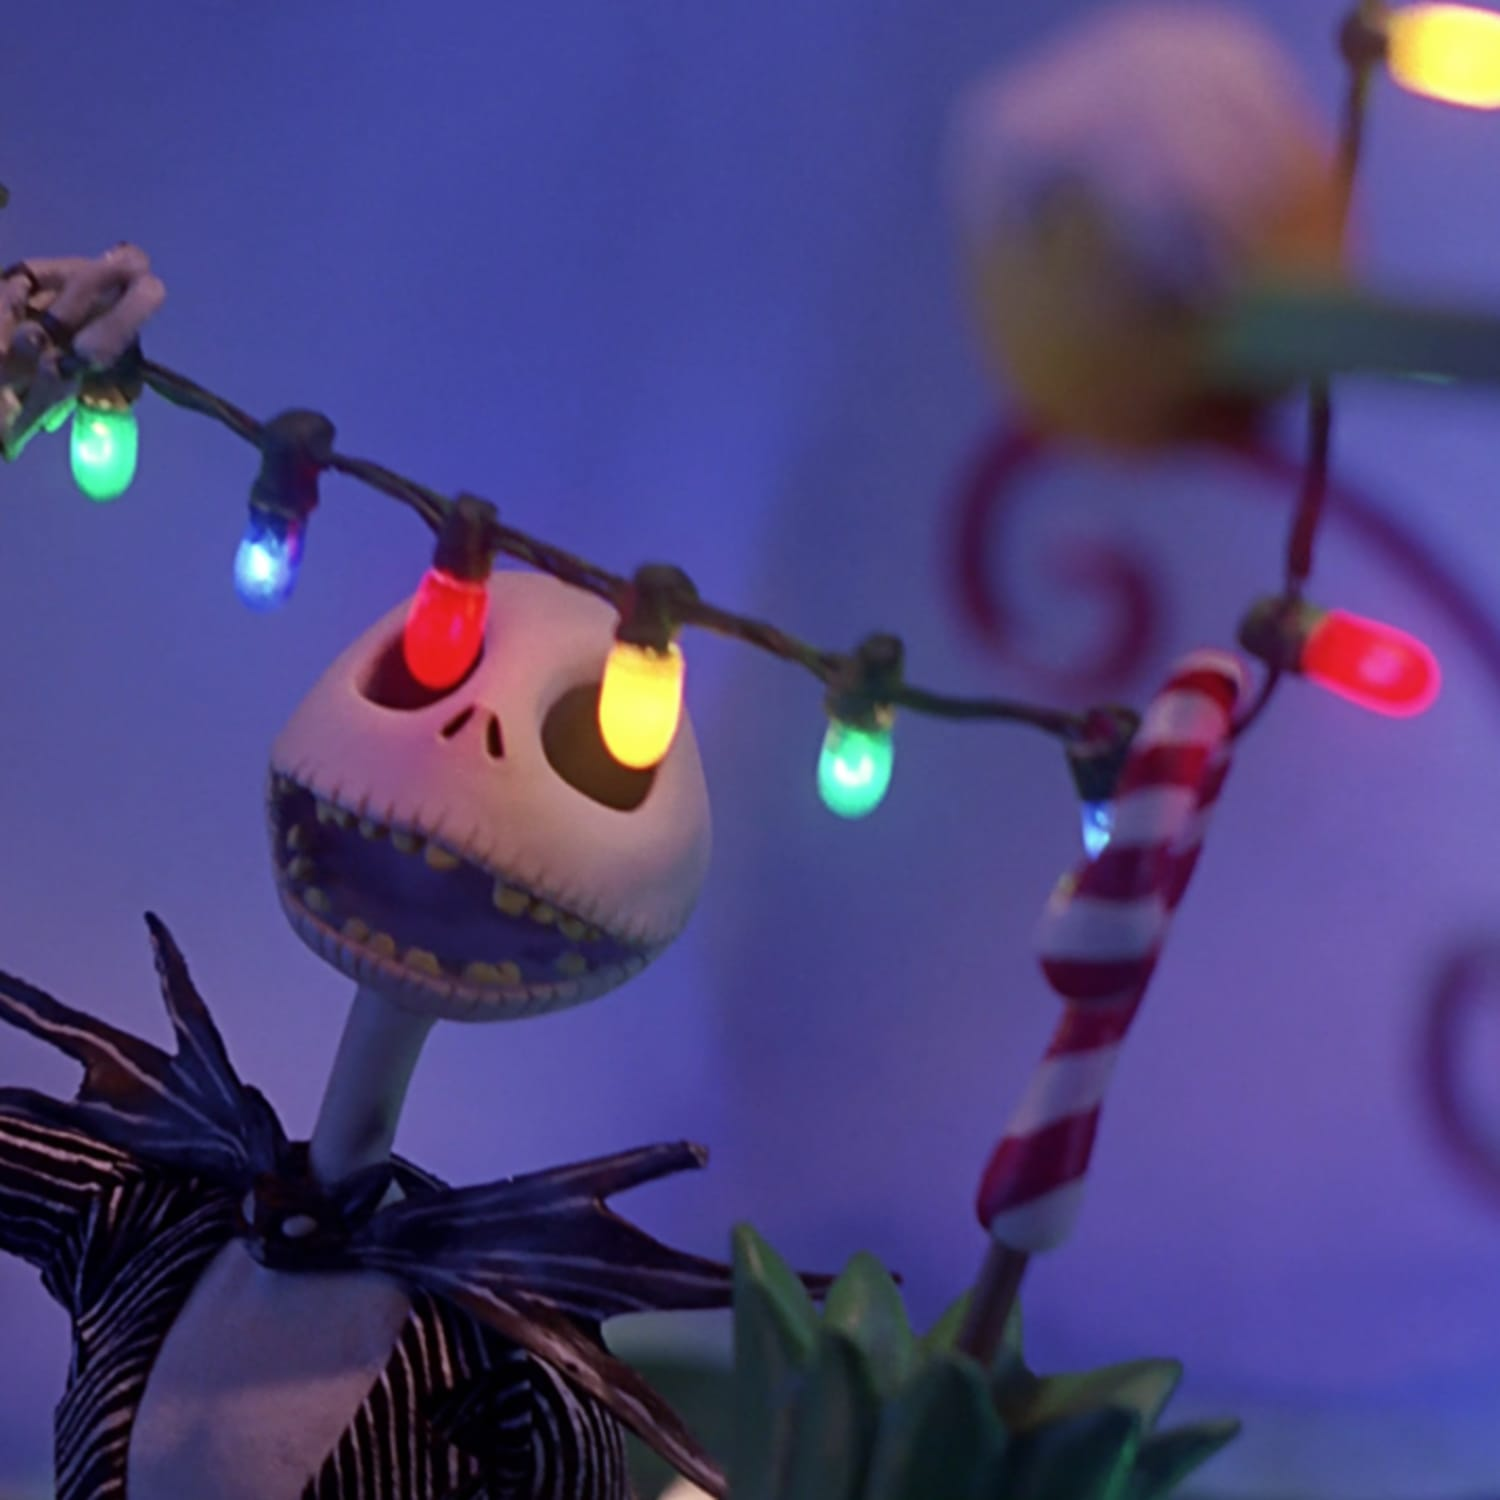 Nightmare Before Christmas Aesthetic Wallpaper.Disney Nightmare Bfore Christmas Home Decor Apartment Therapy